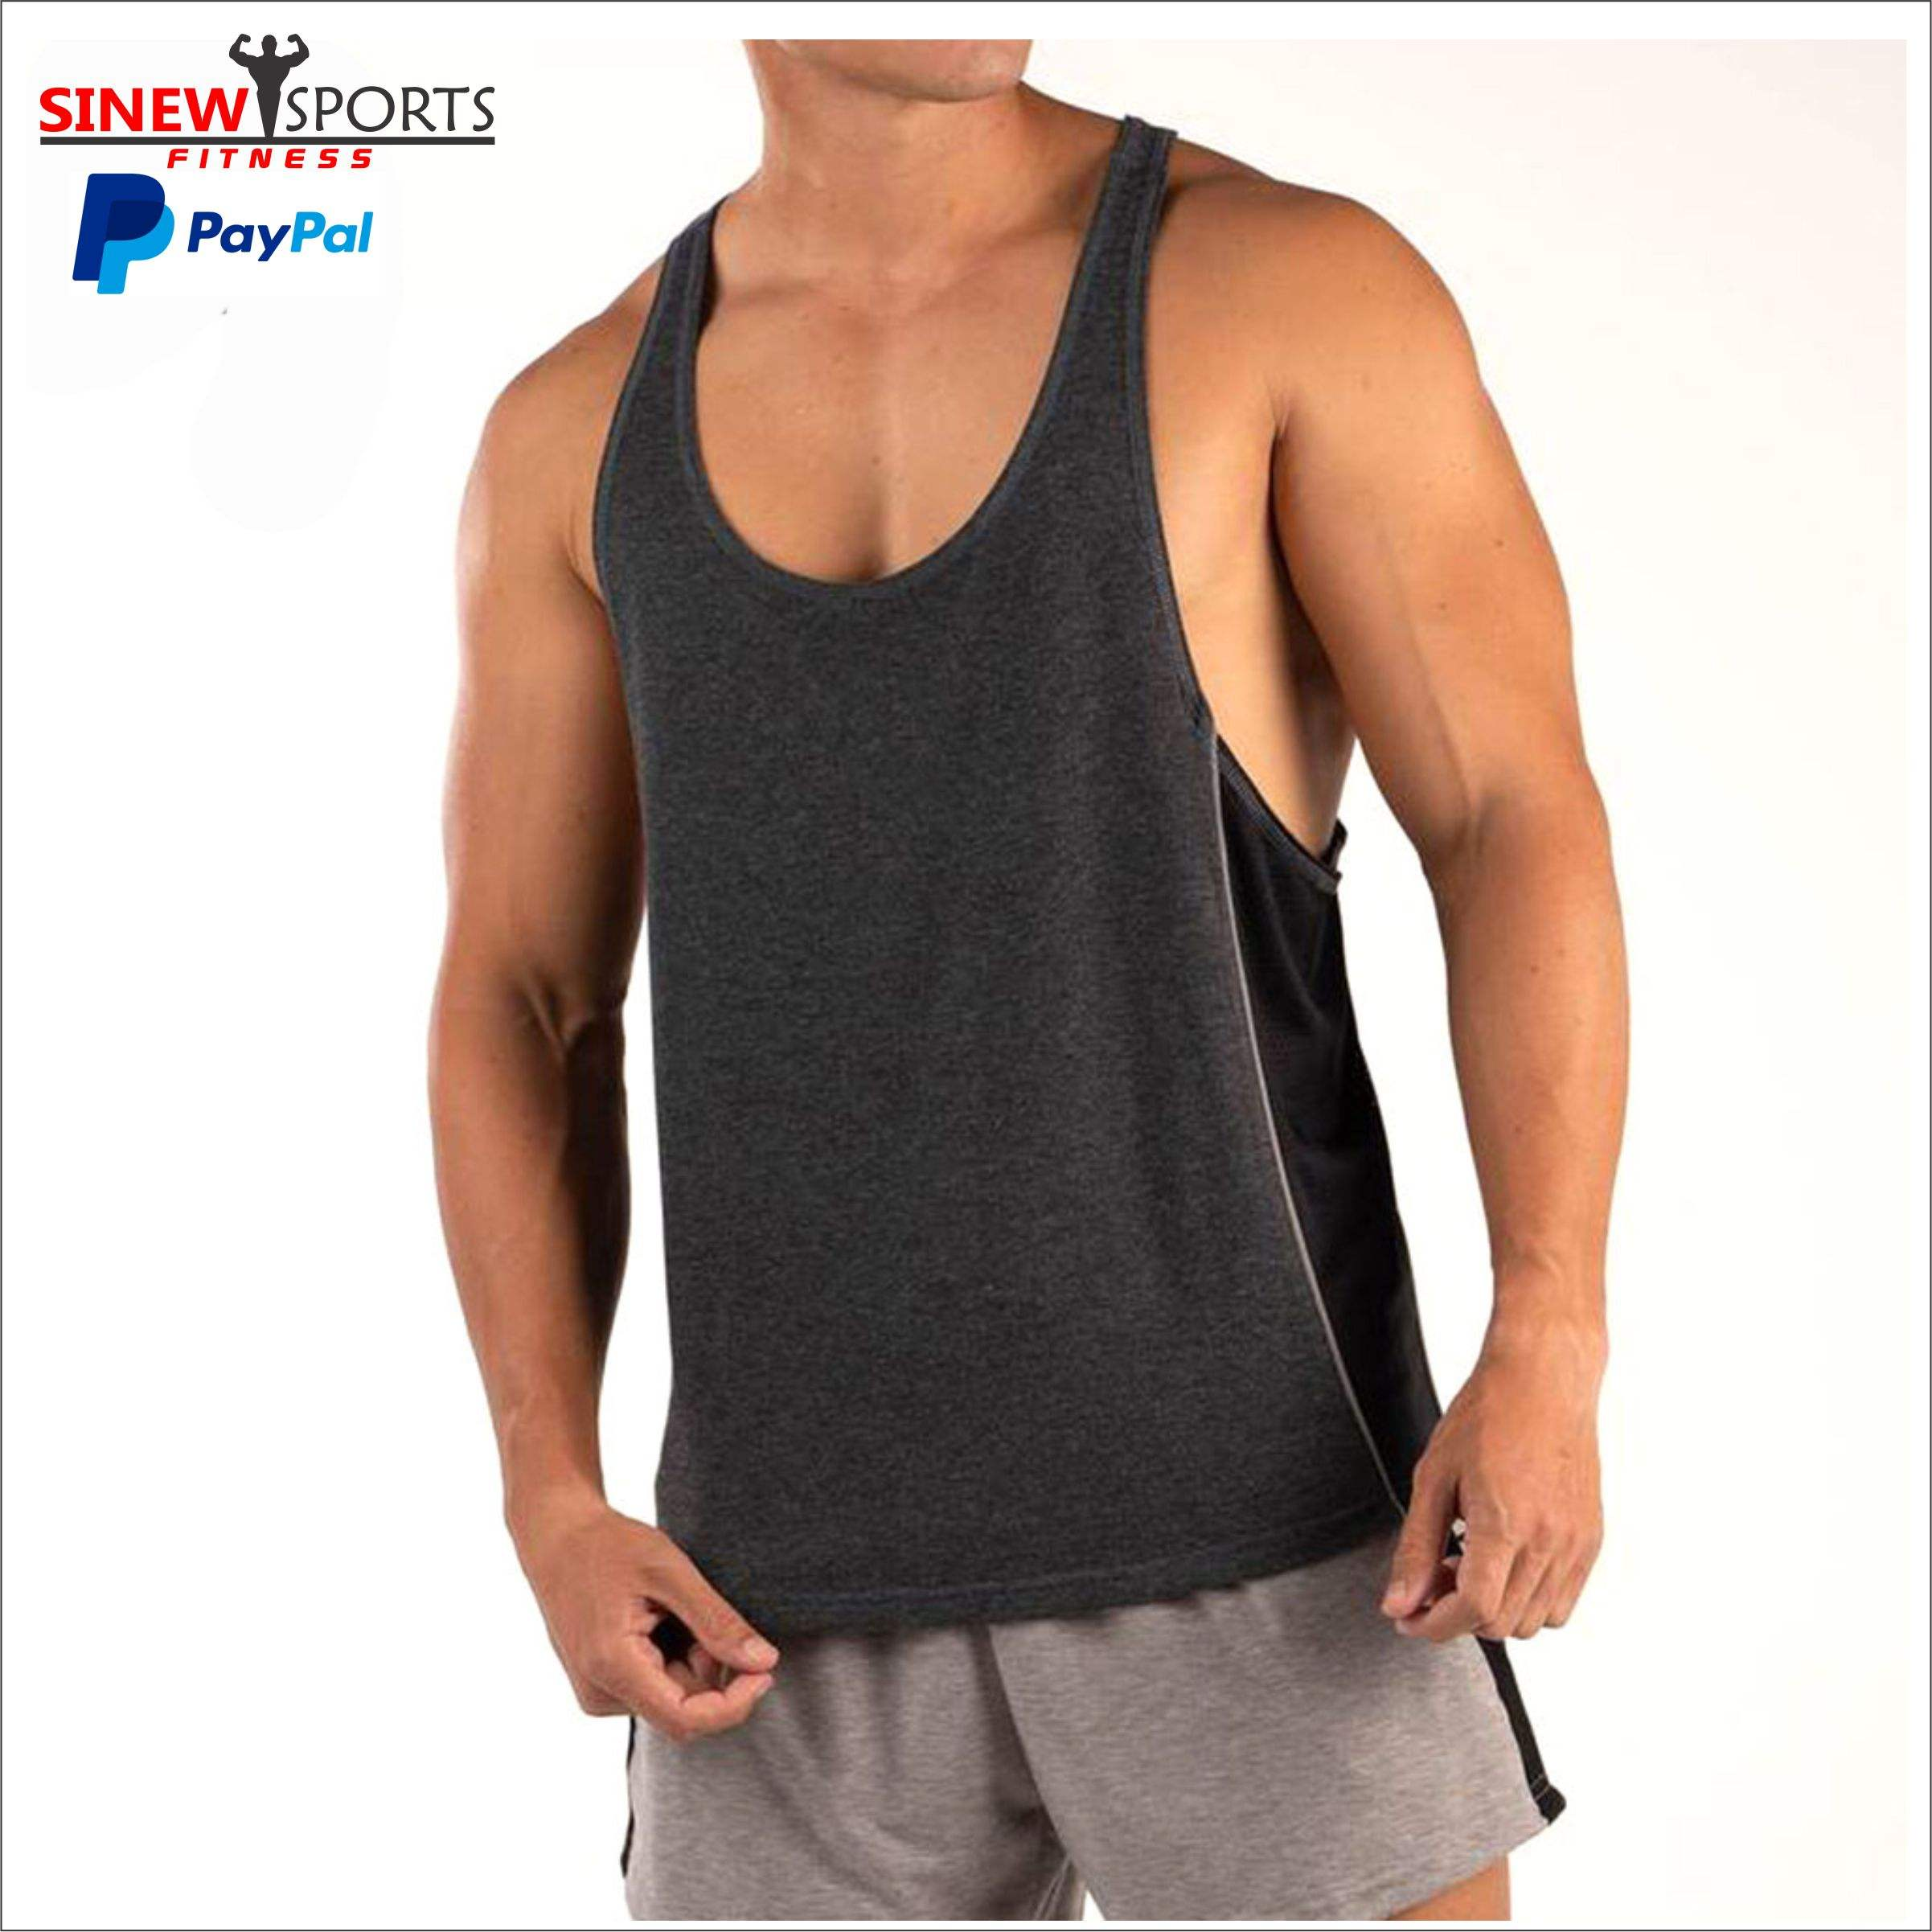 Gym Bodybuilding Workout Vest Men Fitness Muscle Stringer Tank Top Bodybuilding and Fitness